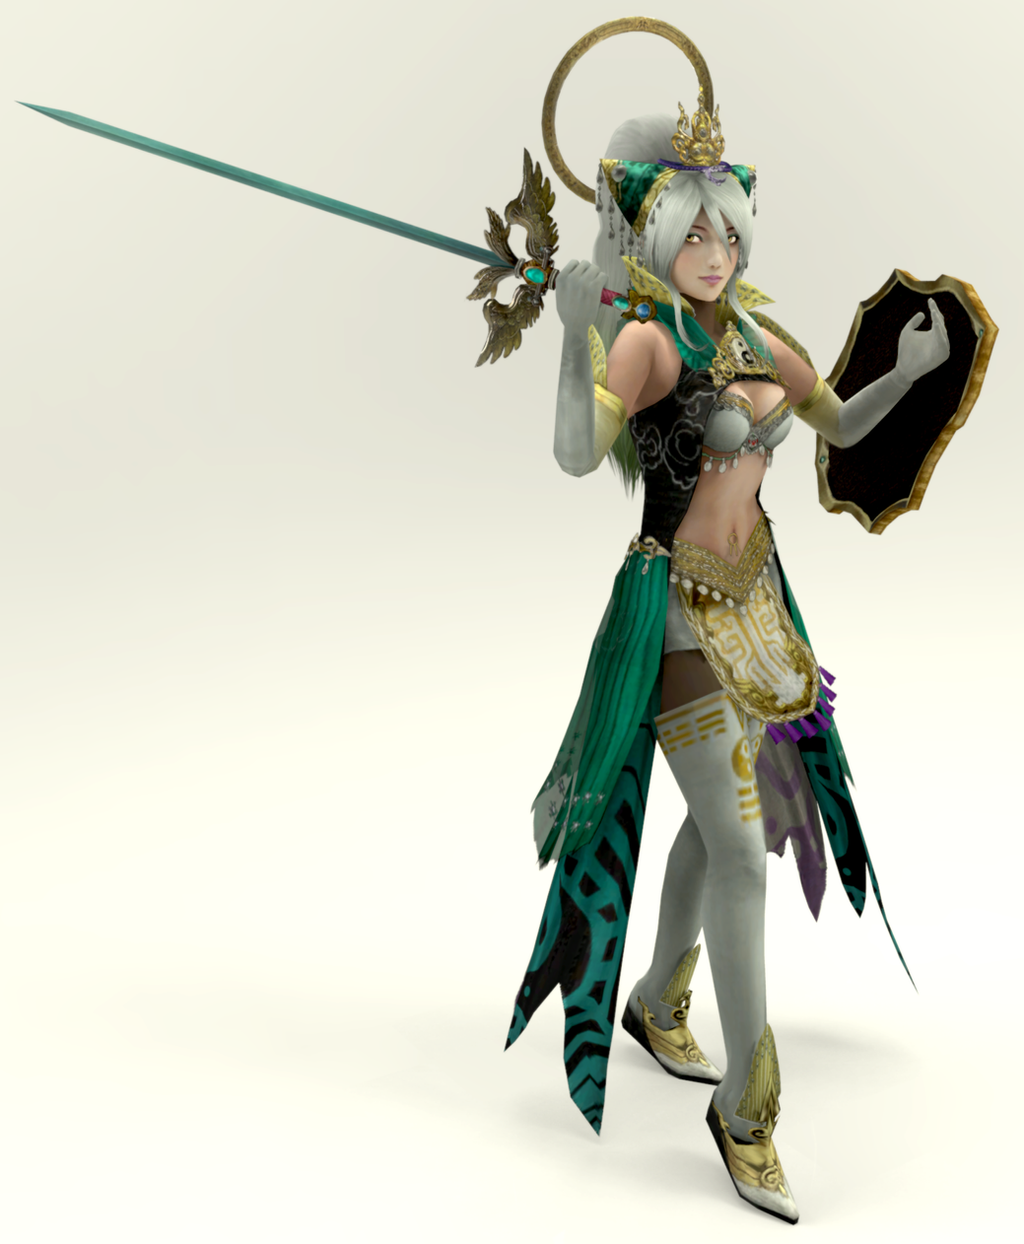 Warriors Orochi 4 Pc Download: Nuwa From Warriors Orochi 3 By Agekei On DeviantART